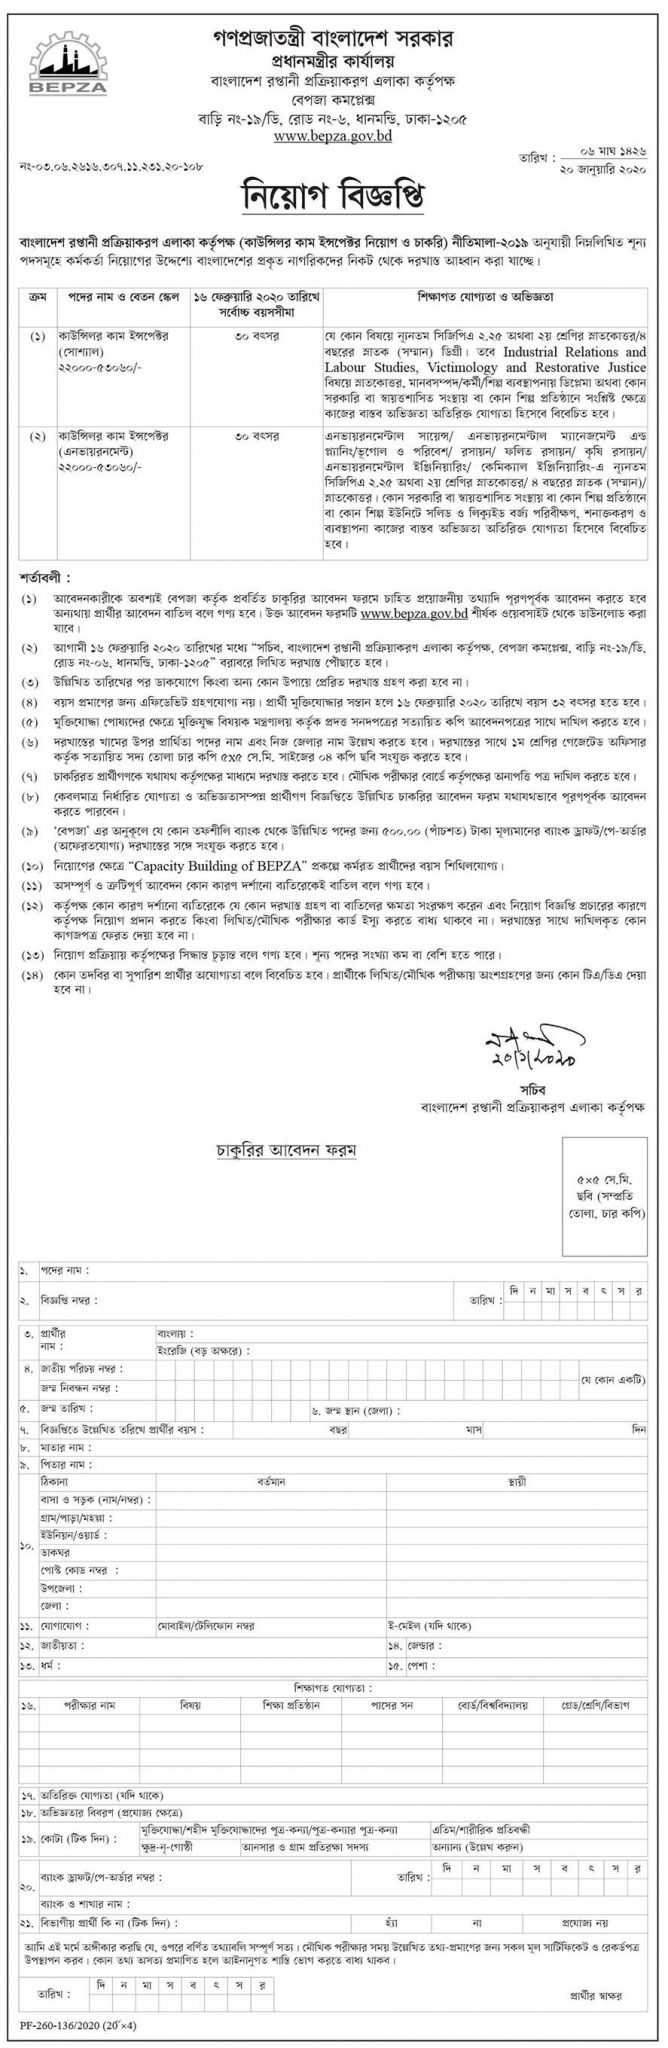 Prime Minister's Office Job Circular 2020